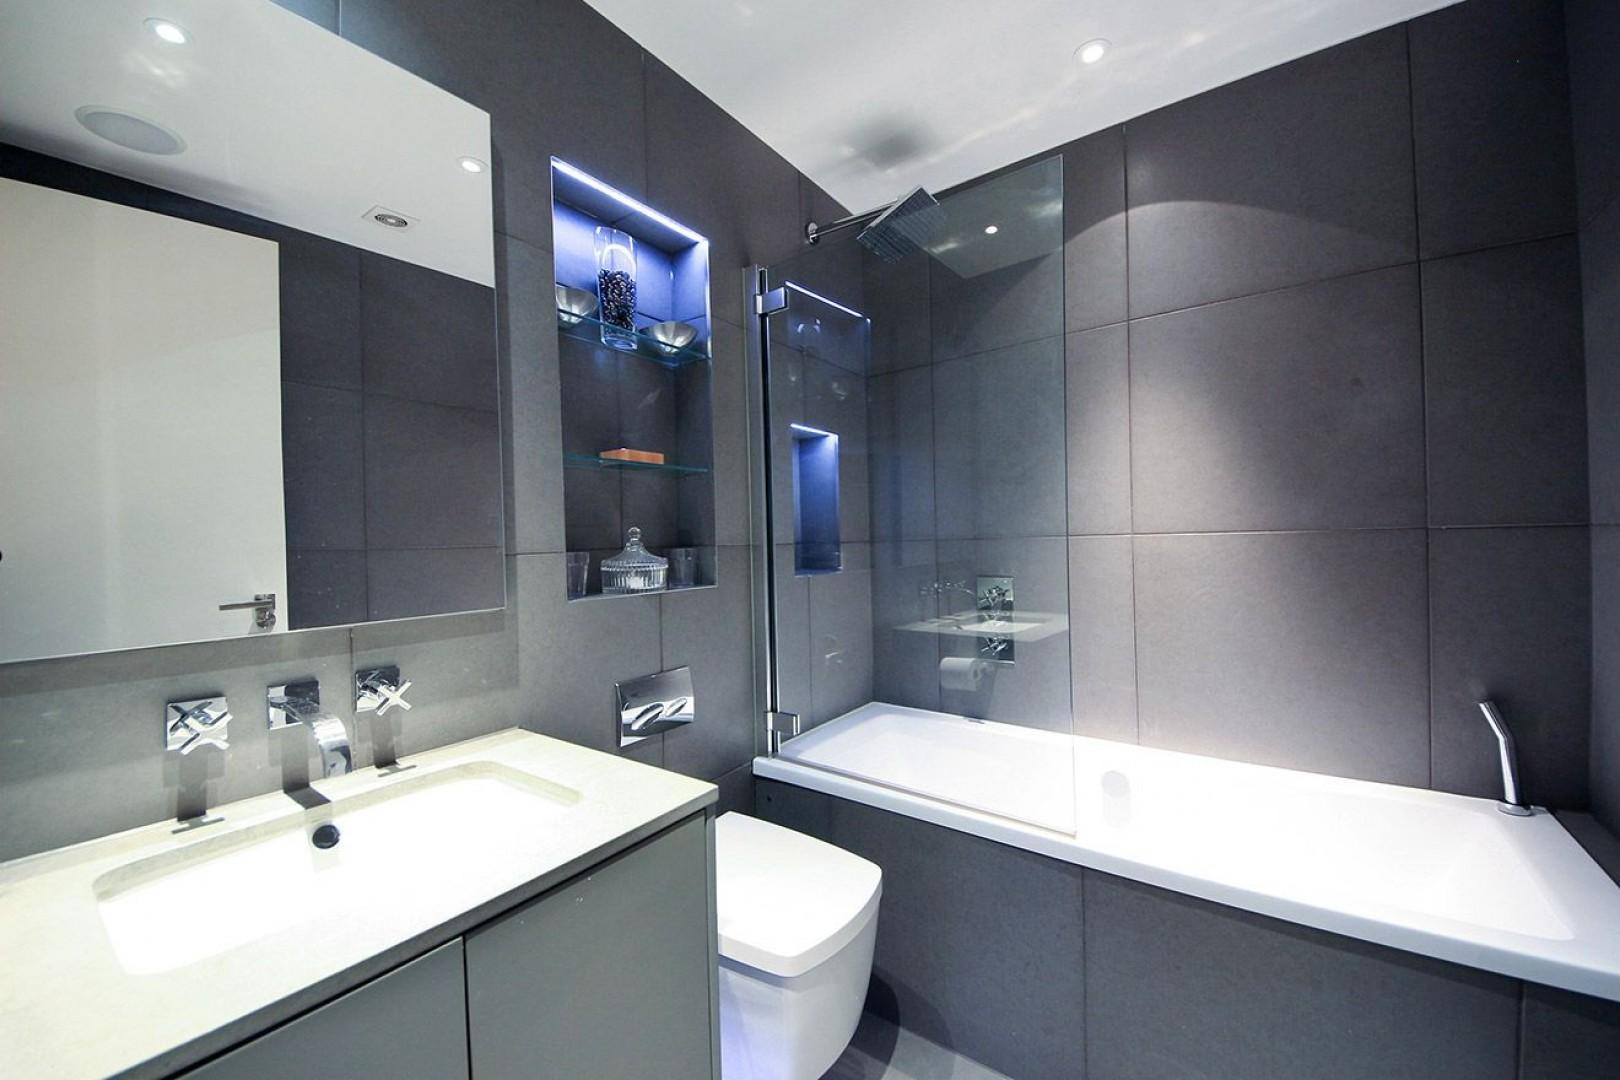 Second bathroom with bathtub-shower, sink and toilet